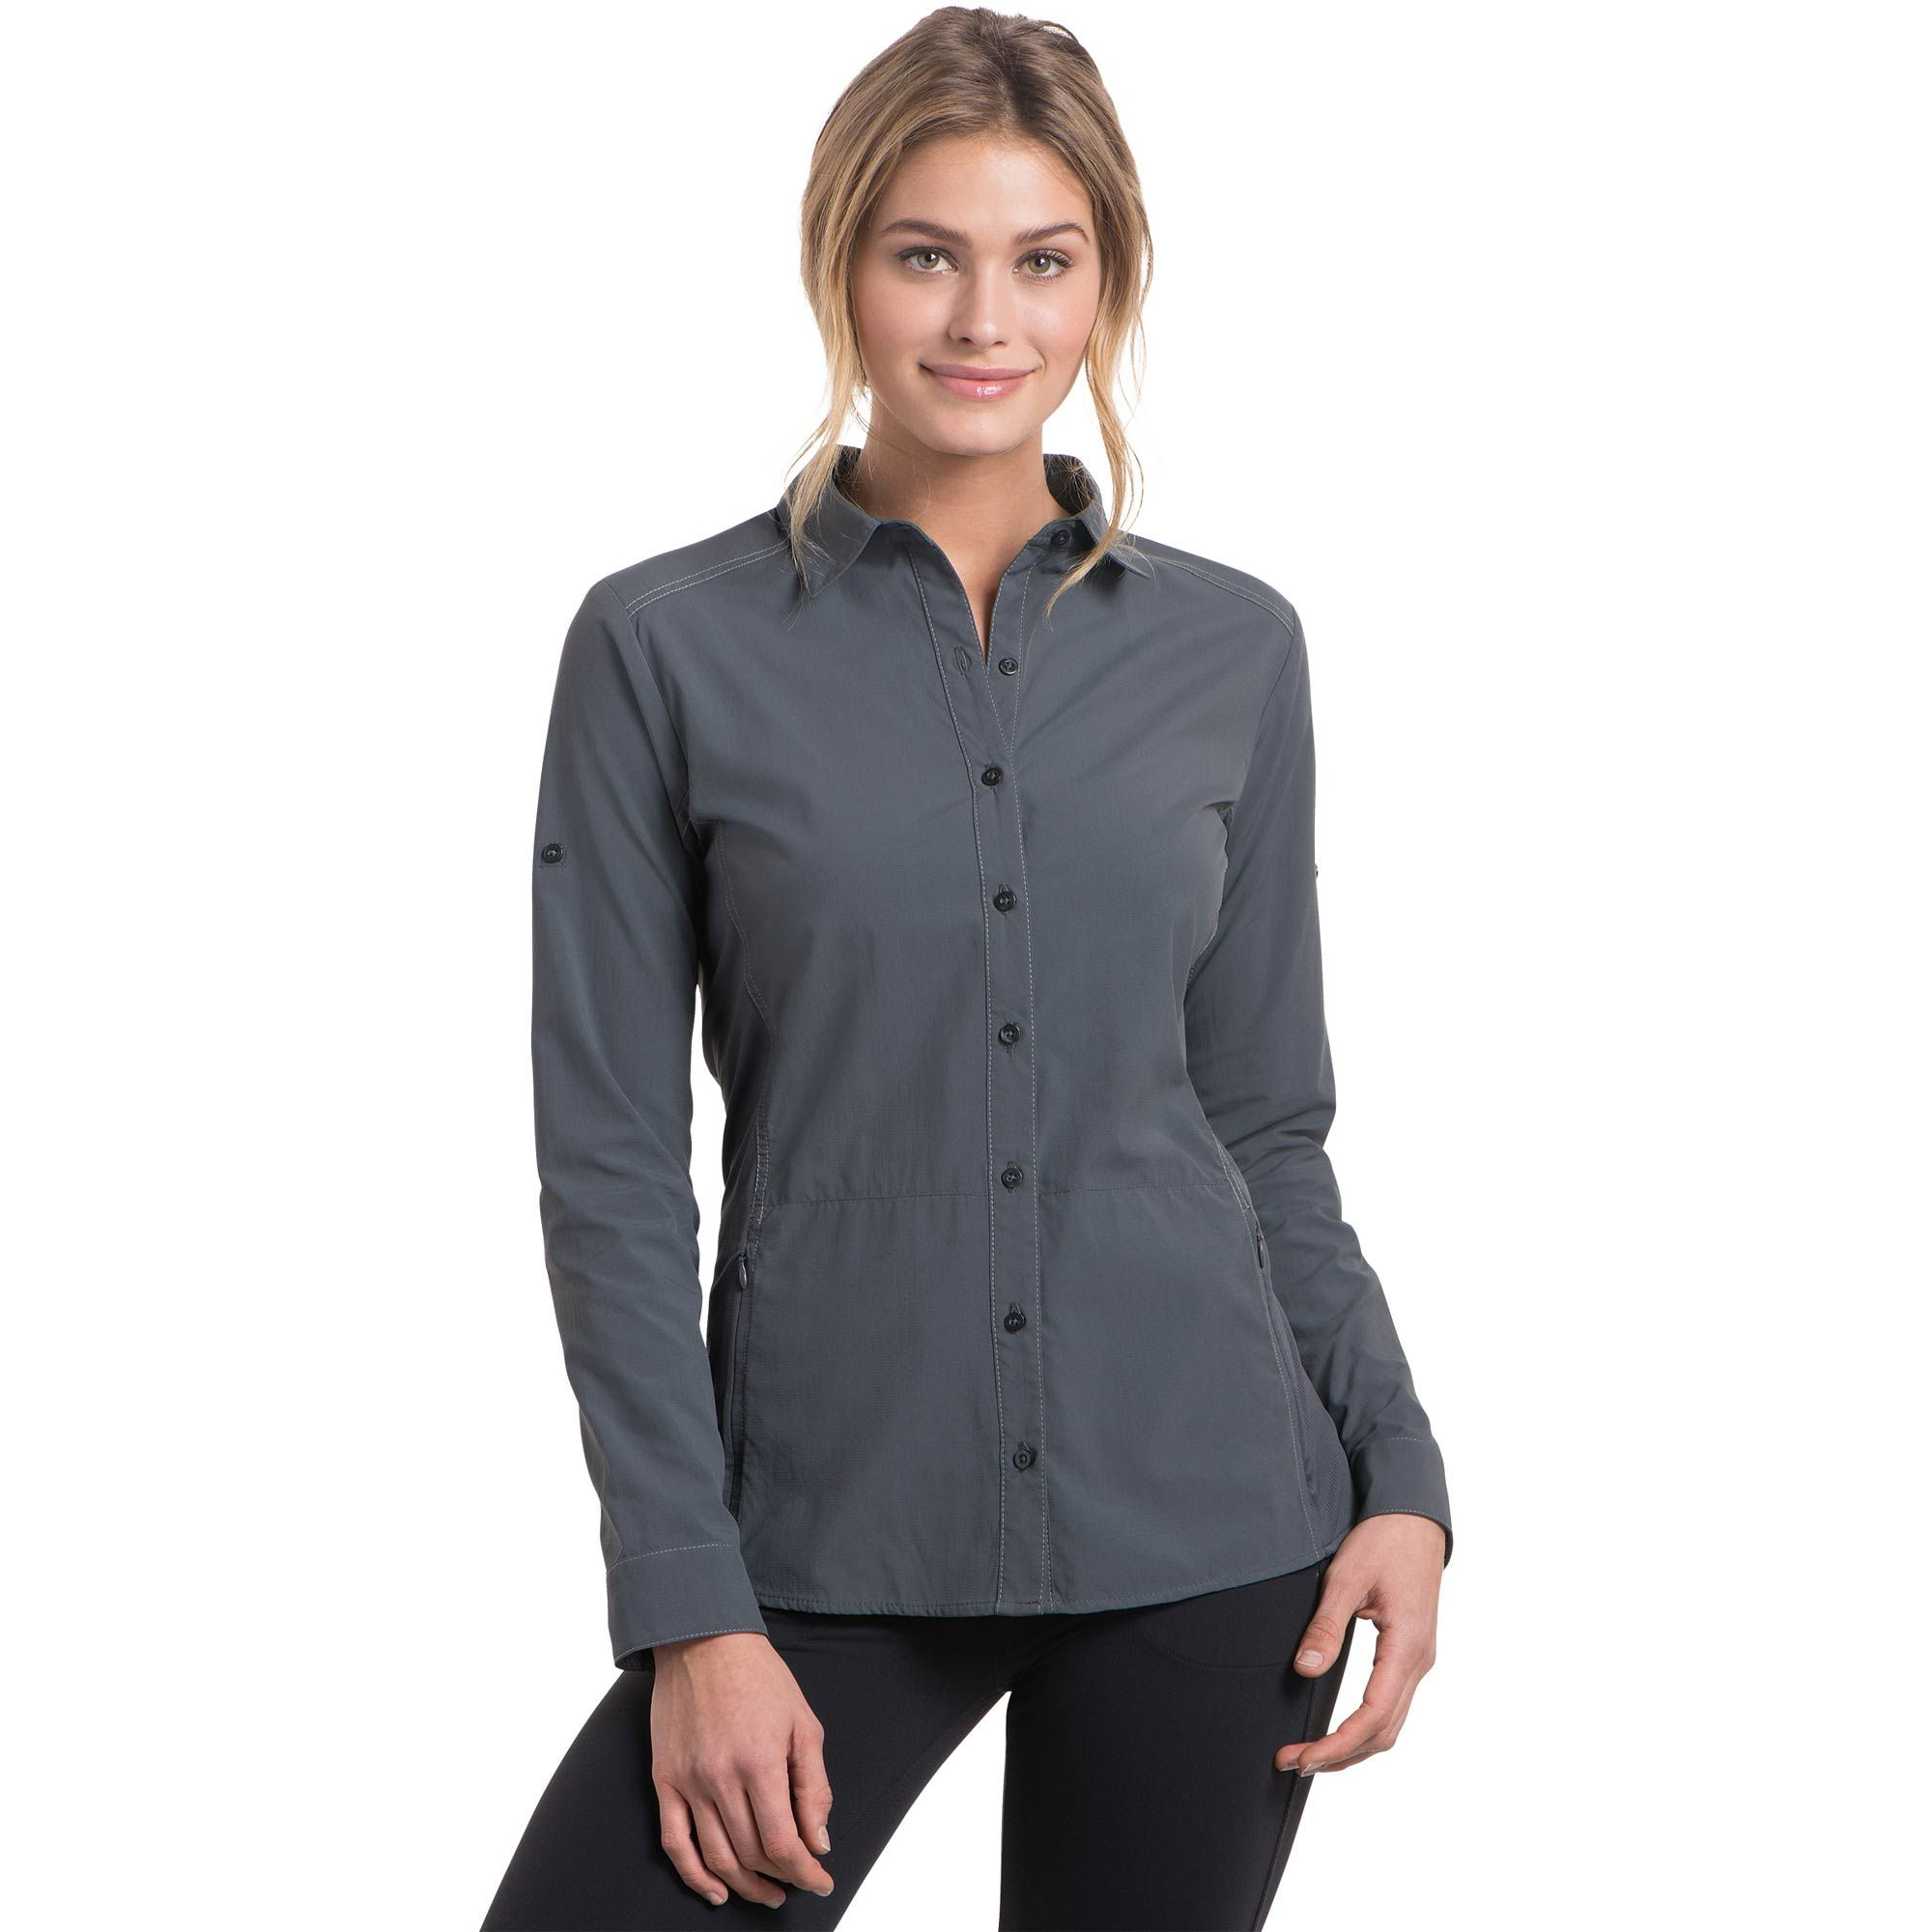 The Kuhl Invoke Shirt Is Made Of A Lightweight Quick Dry Moisture